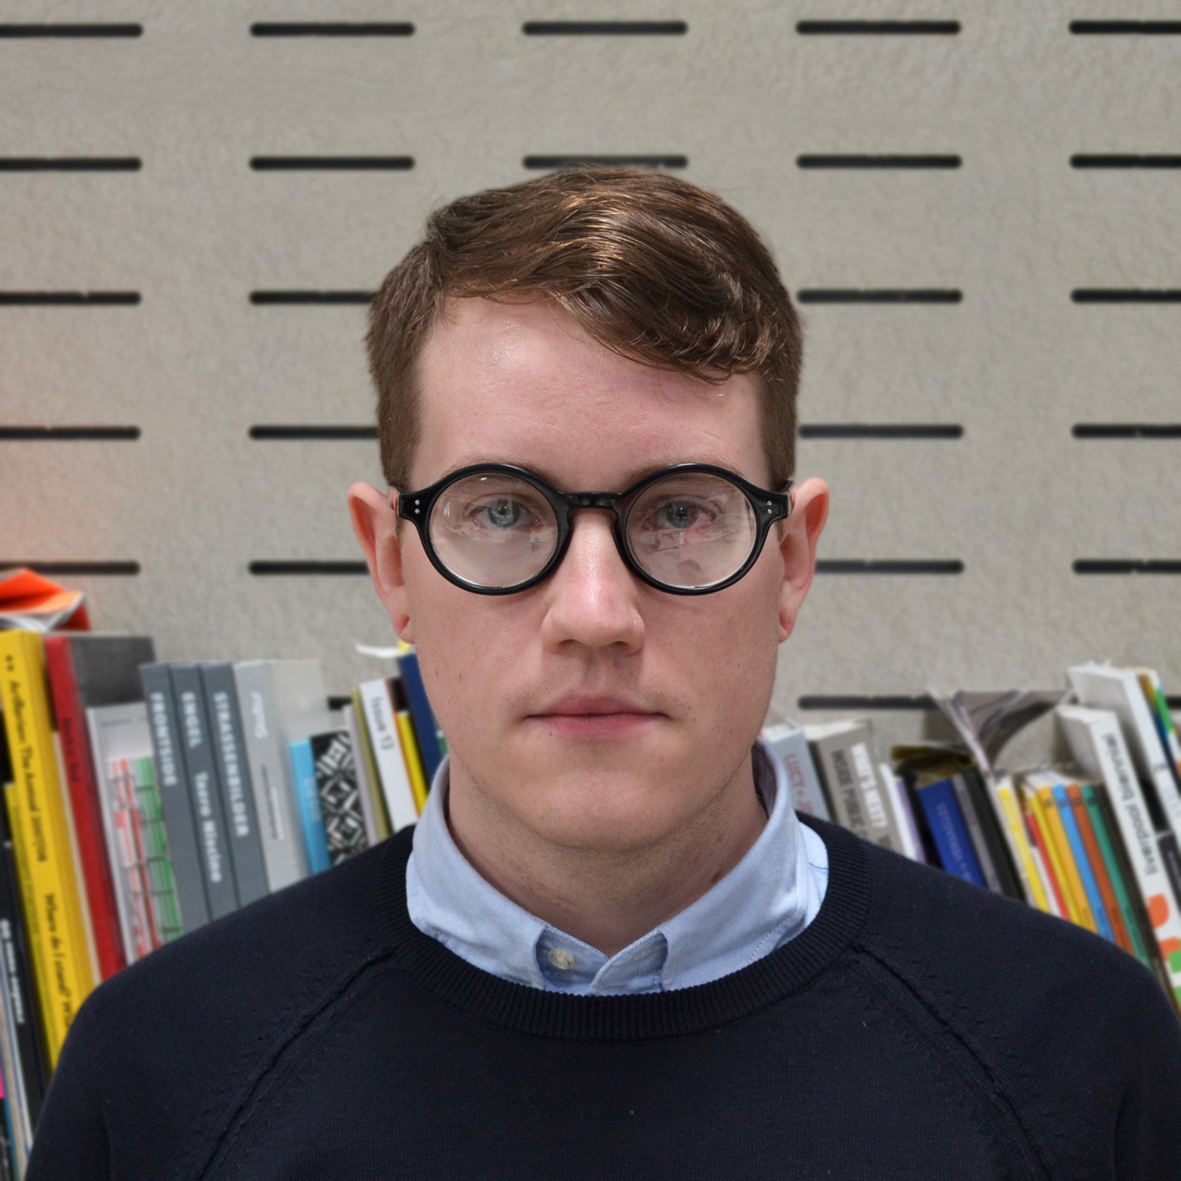 >James previously worked at The Tetley (Leeds) as Programme Coordinator helping deliver the public programme of exhibitions and events. James is co-founder and a member of curatorial collective Mexico which has produced projects for Eastside Projects, Two Queens, and Focal Point Gallery among others, as well as co-producing city-wide arts programme About Time across Leeds in 2015.</p><p>